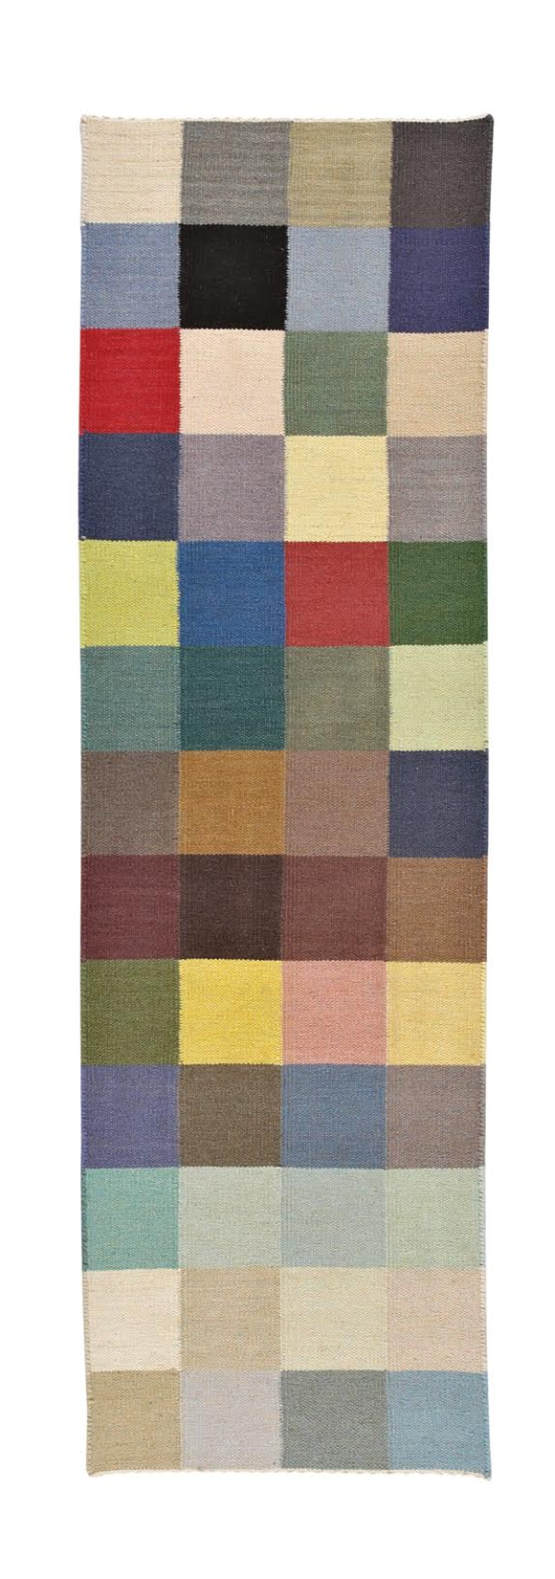 libby_color_blanket2